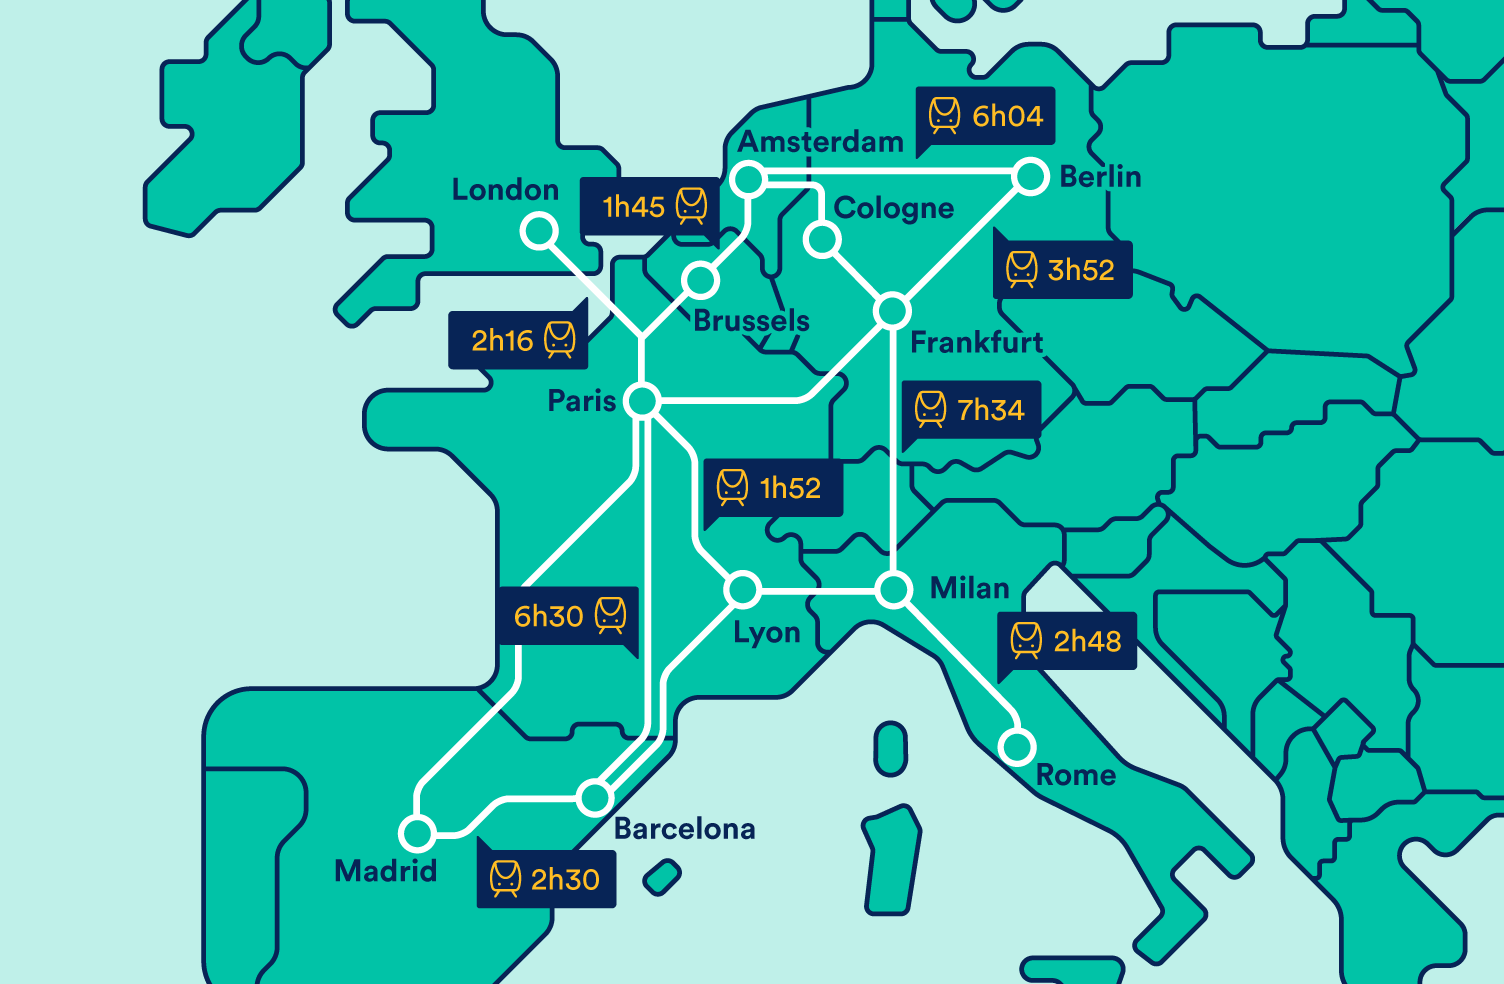 Trains in Europe | Buy European Train Tickets Online | Trainline